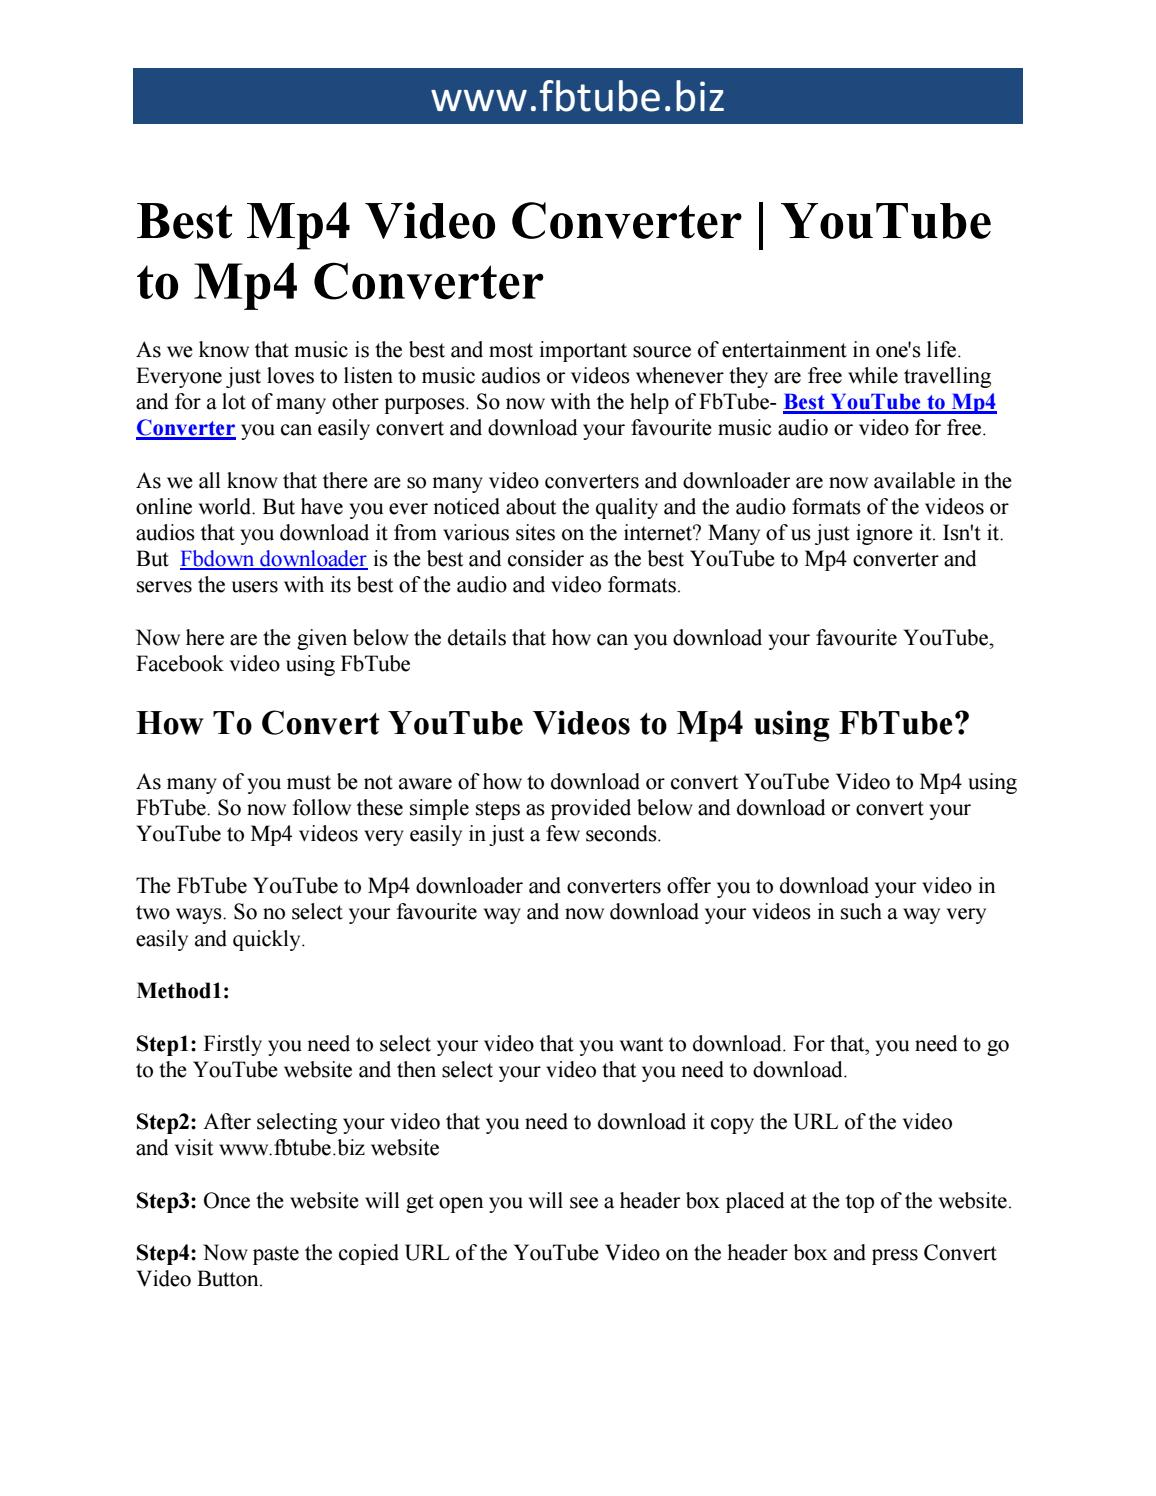 Best Mp4 Video Converter | YouTube to Mp4 Converter by